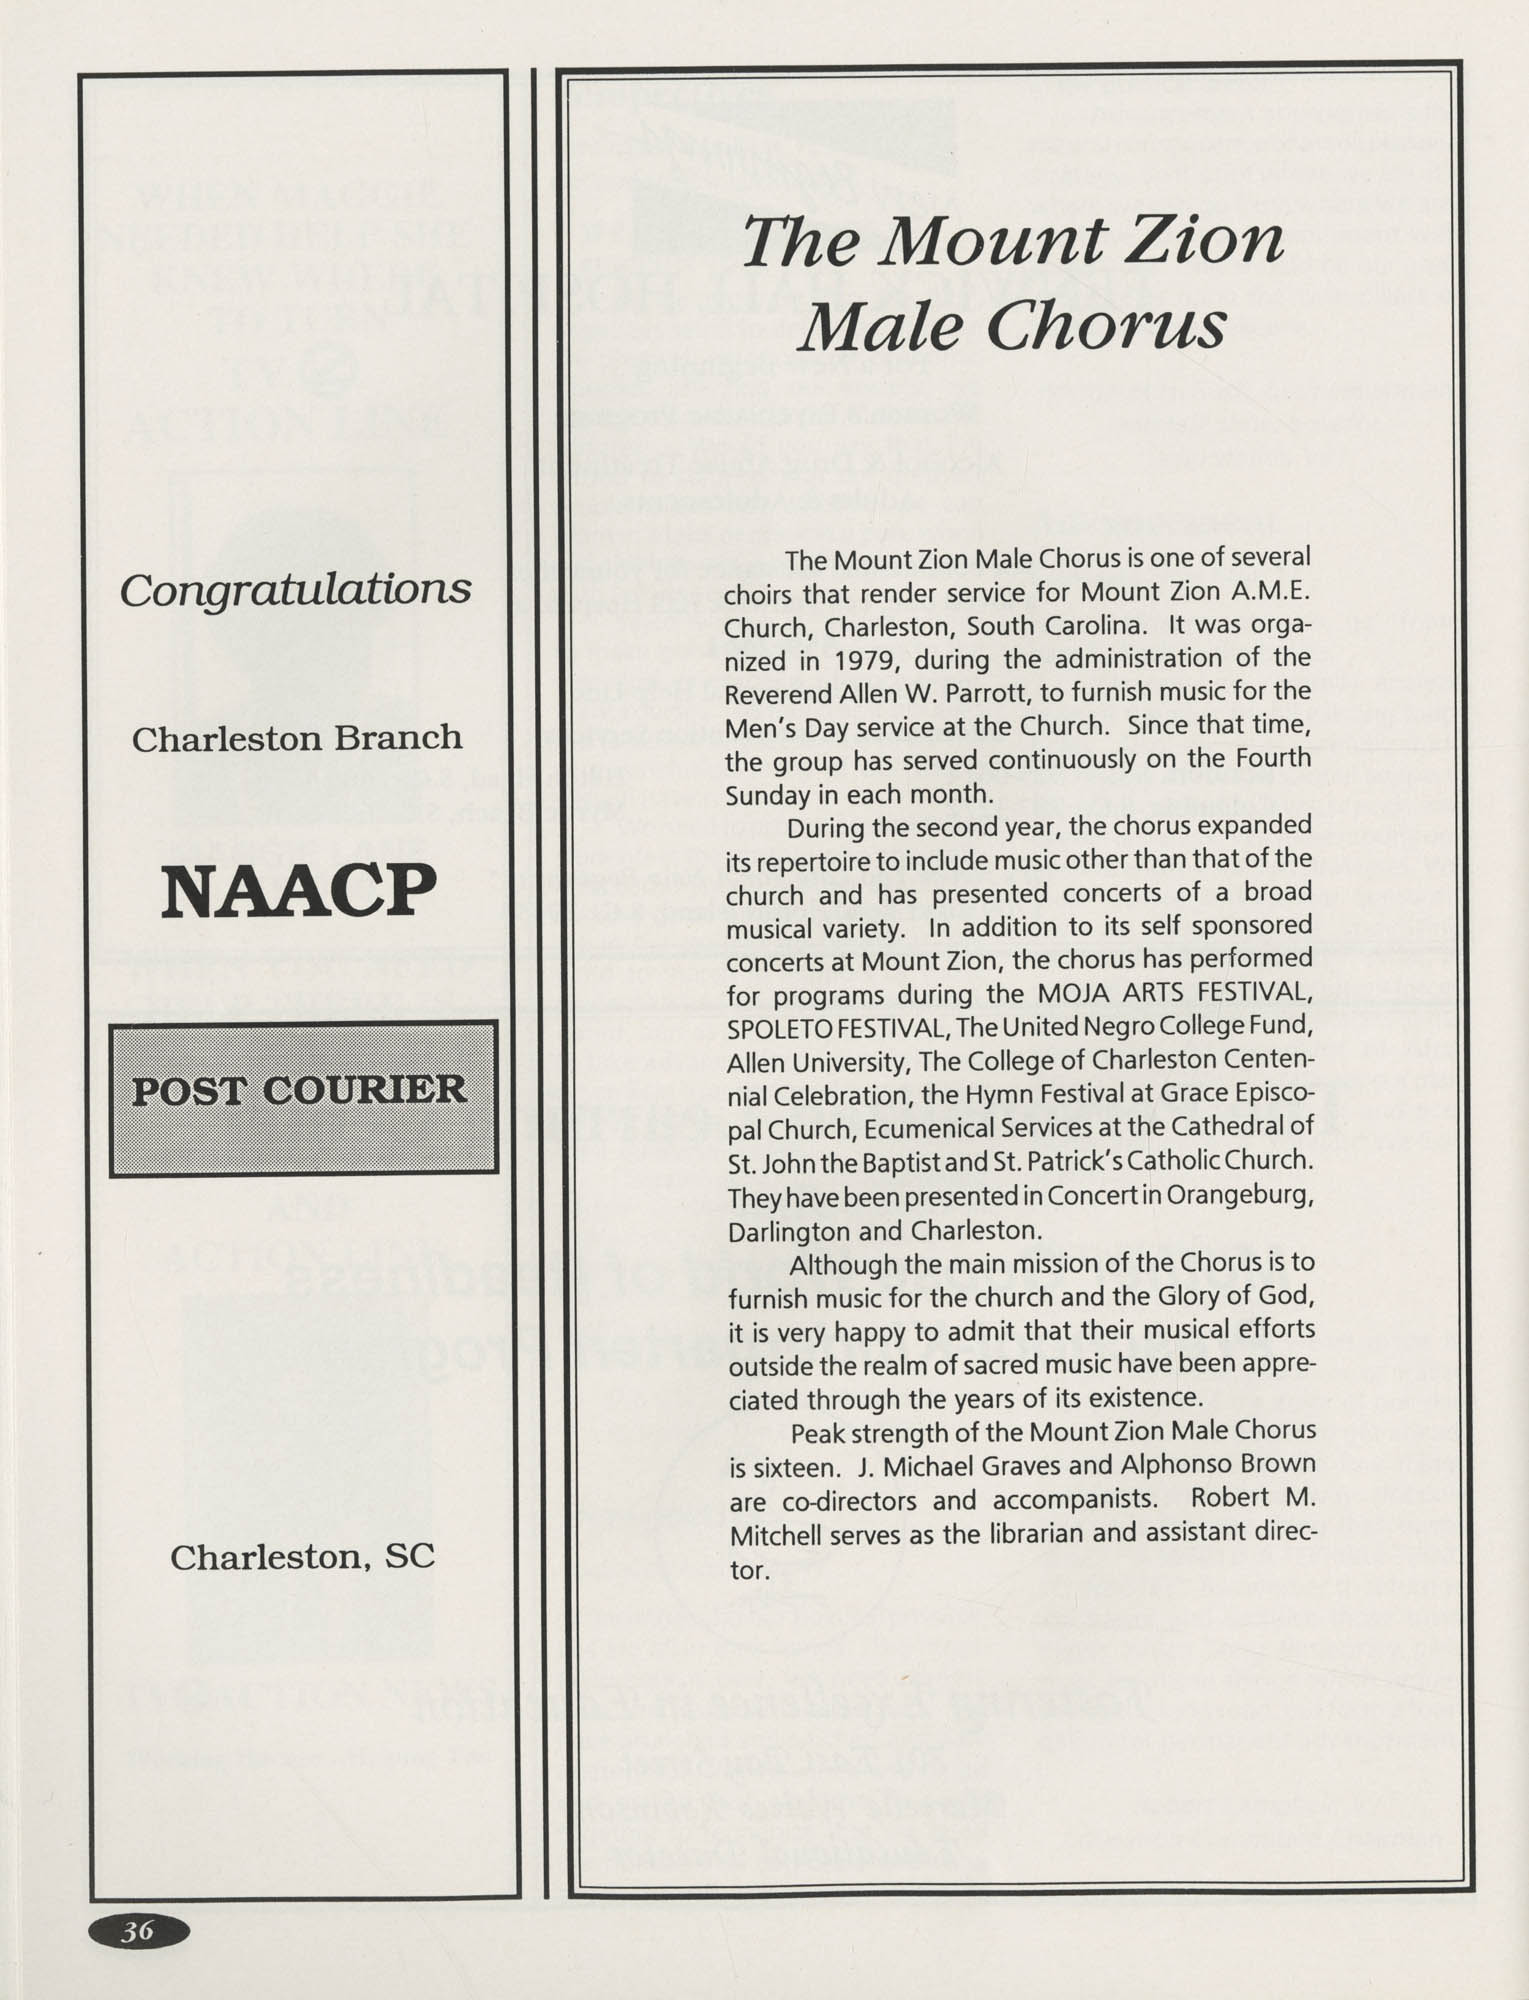 1991 Freedom Fund Magazine, Charleston Branch of the NAACP, Page 36